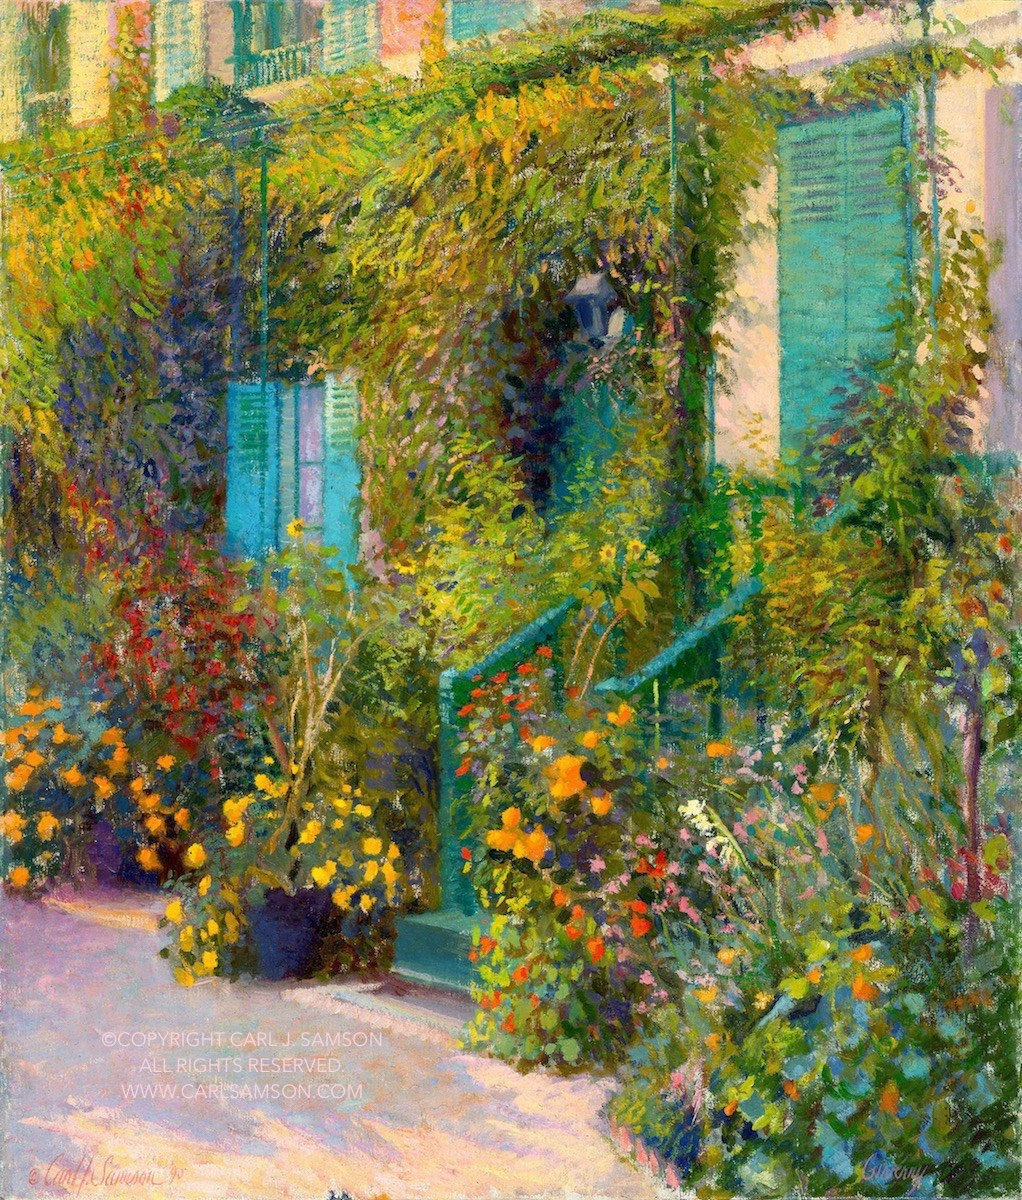 "Steps to Monet's, Giverny , 37"" x 31"", oil on linen canvas, SOLD, private collection"